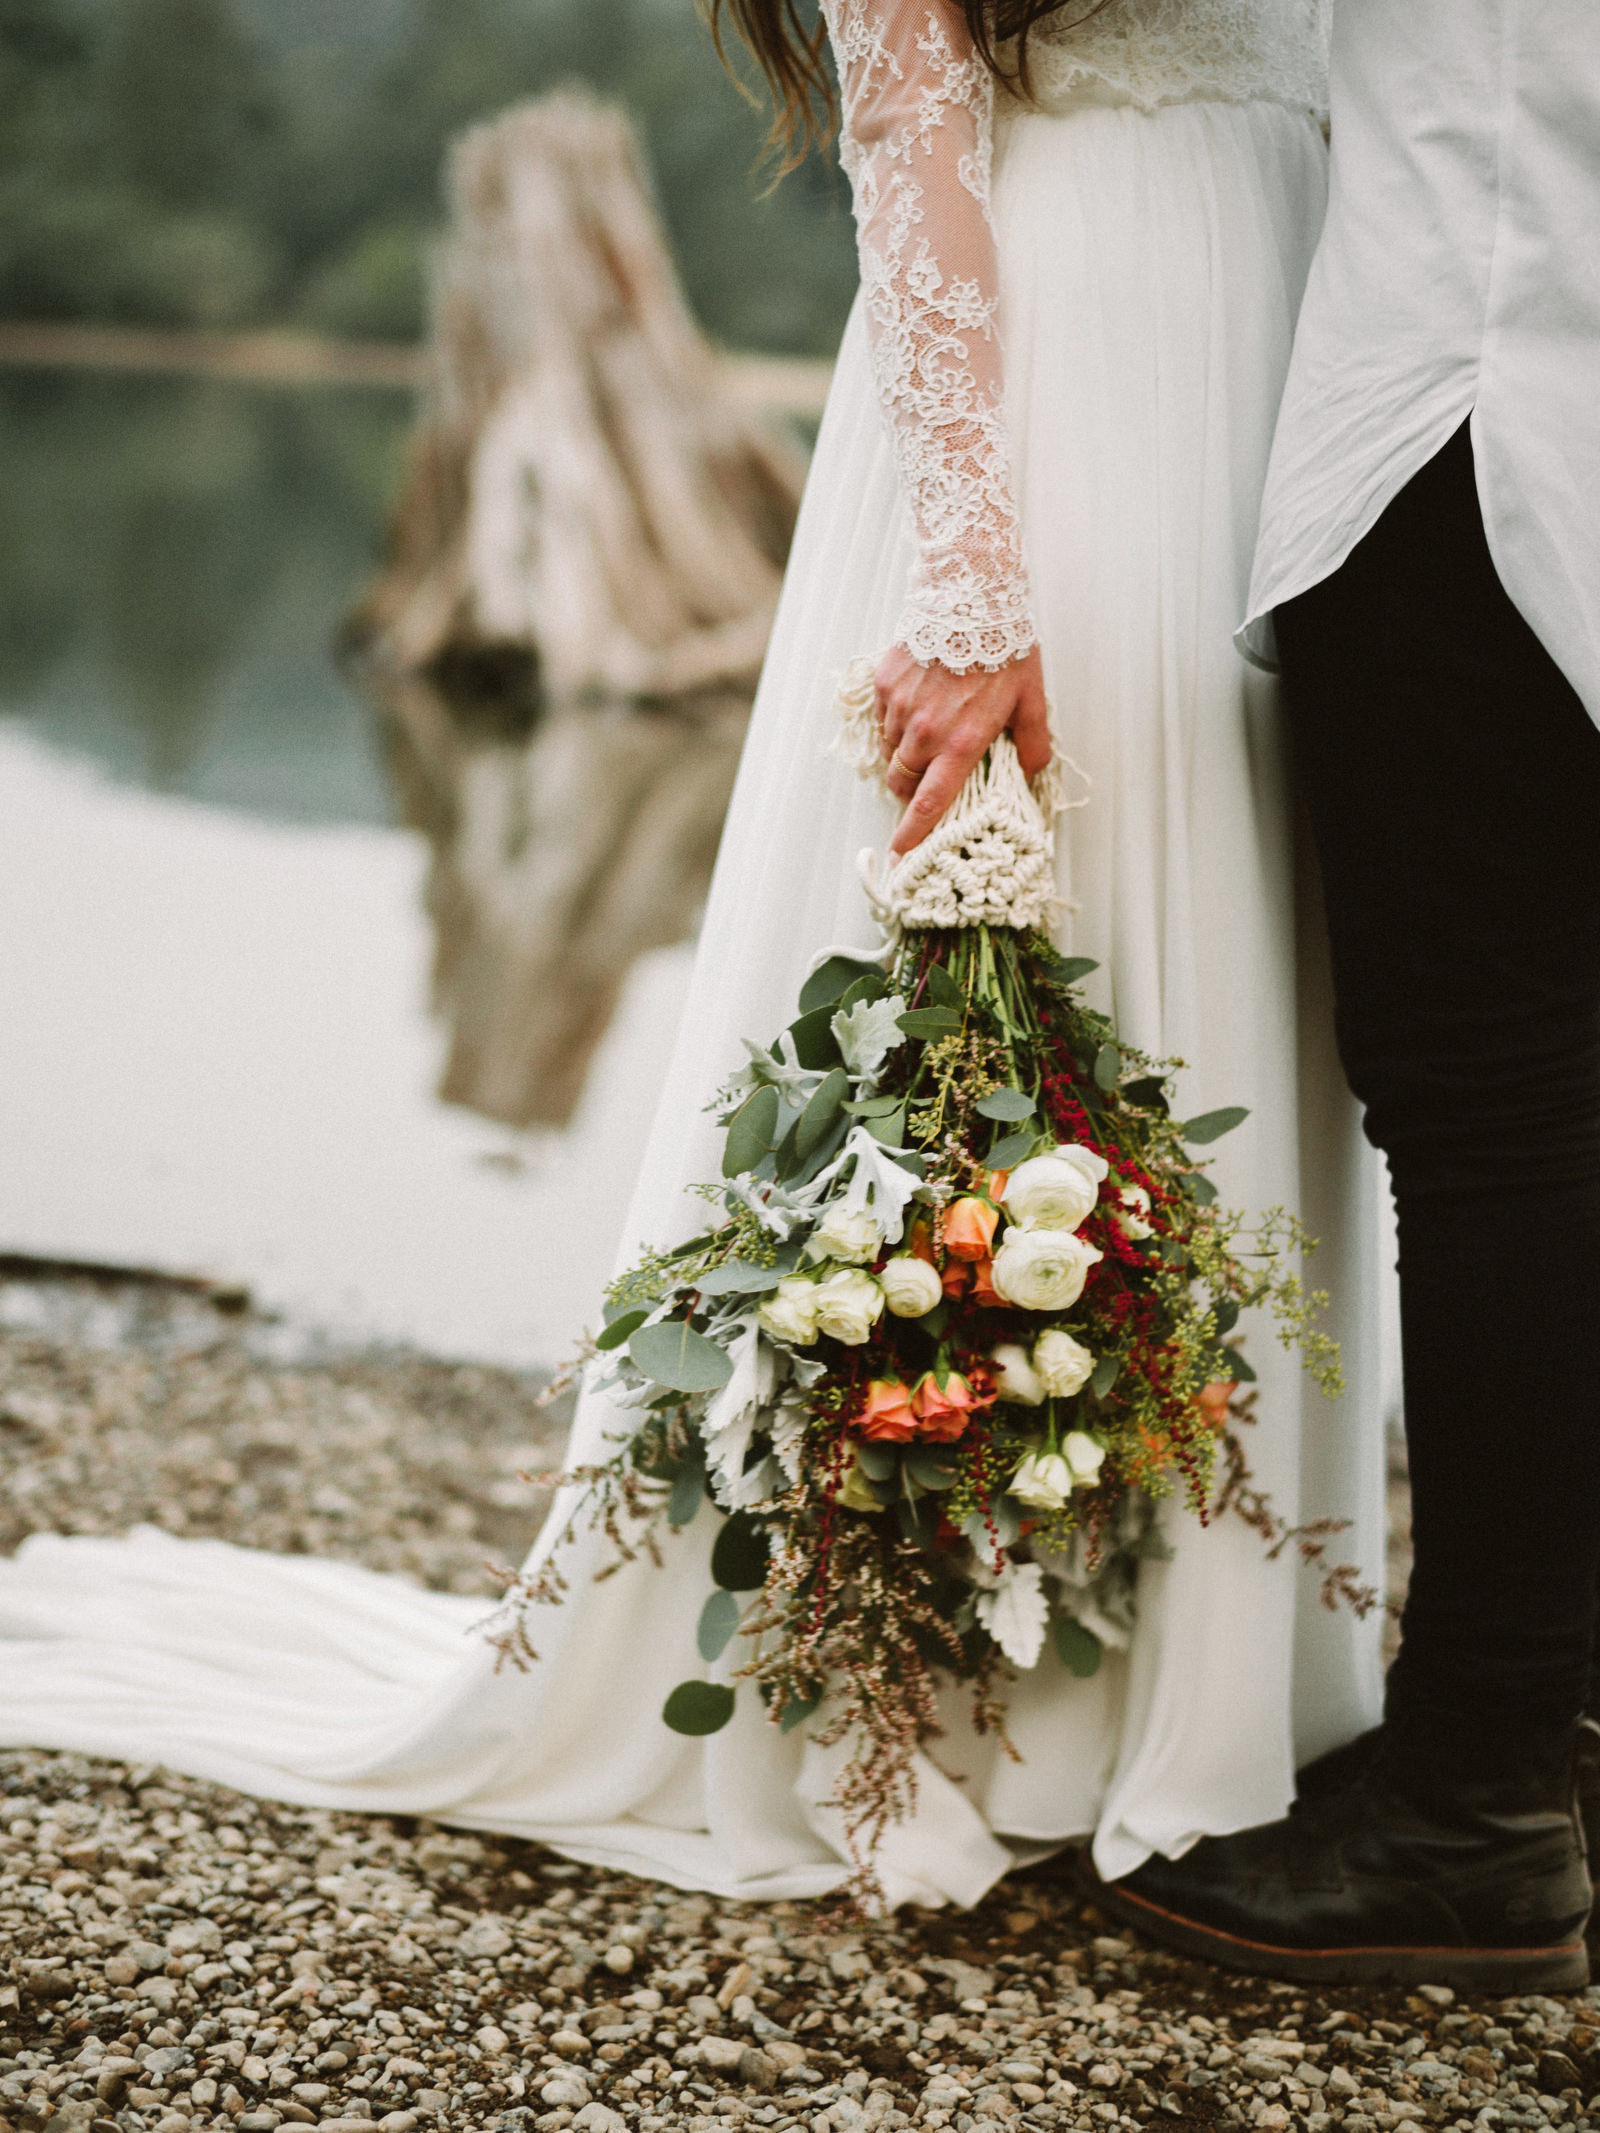 athena-and-camron-seattle-elopement-wedding-benj-haisch-rattlesnake-lake-christian-couple-goals82